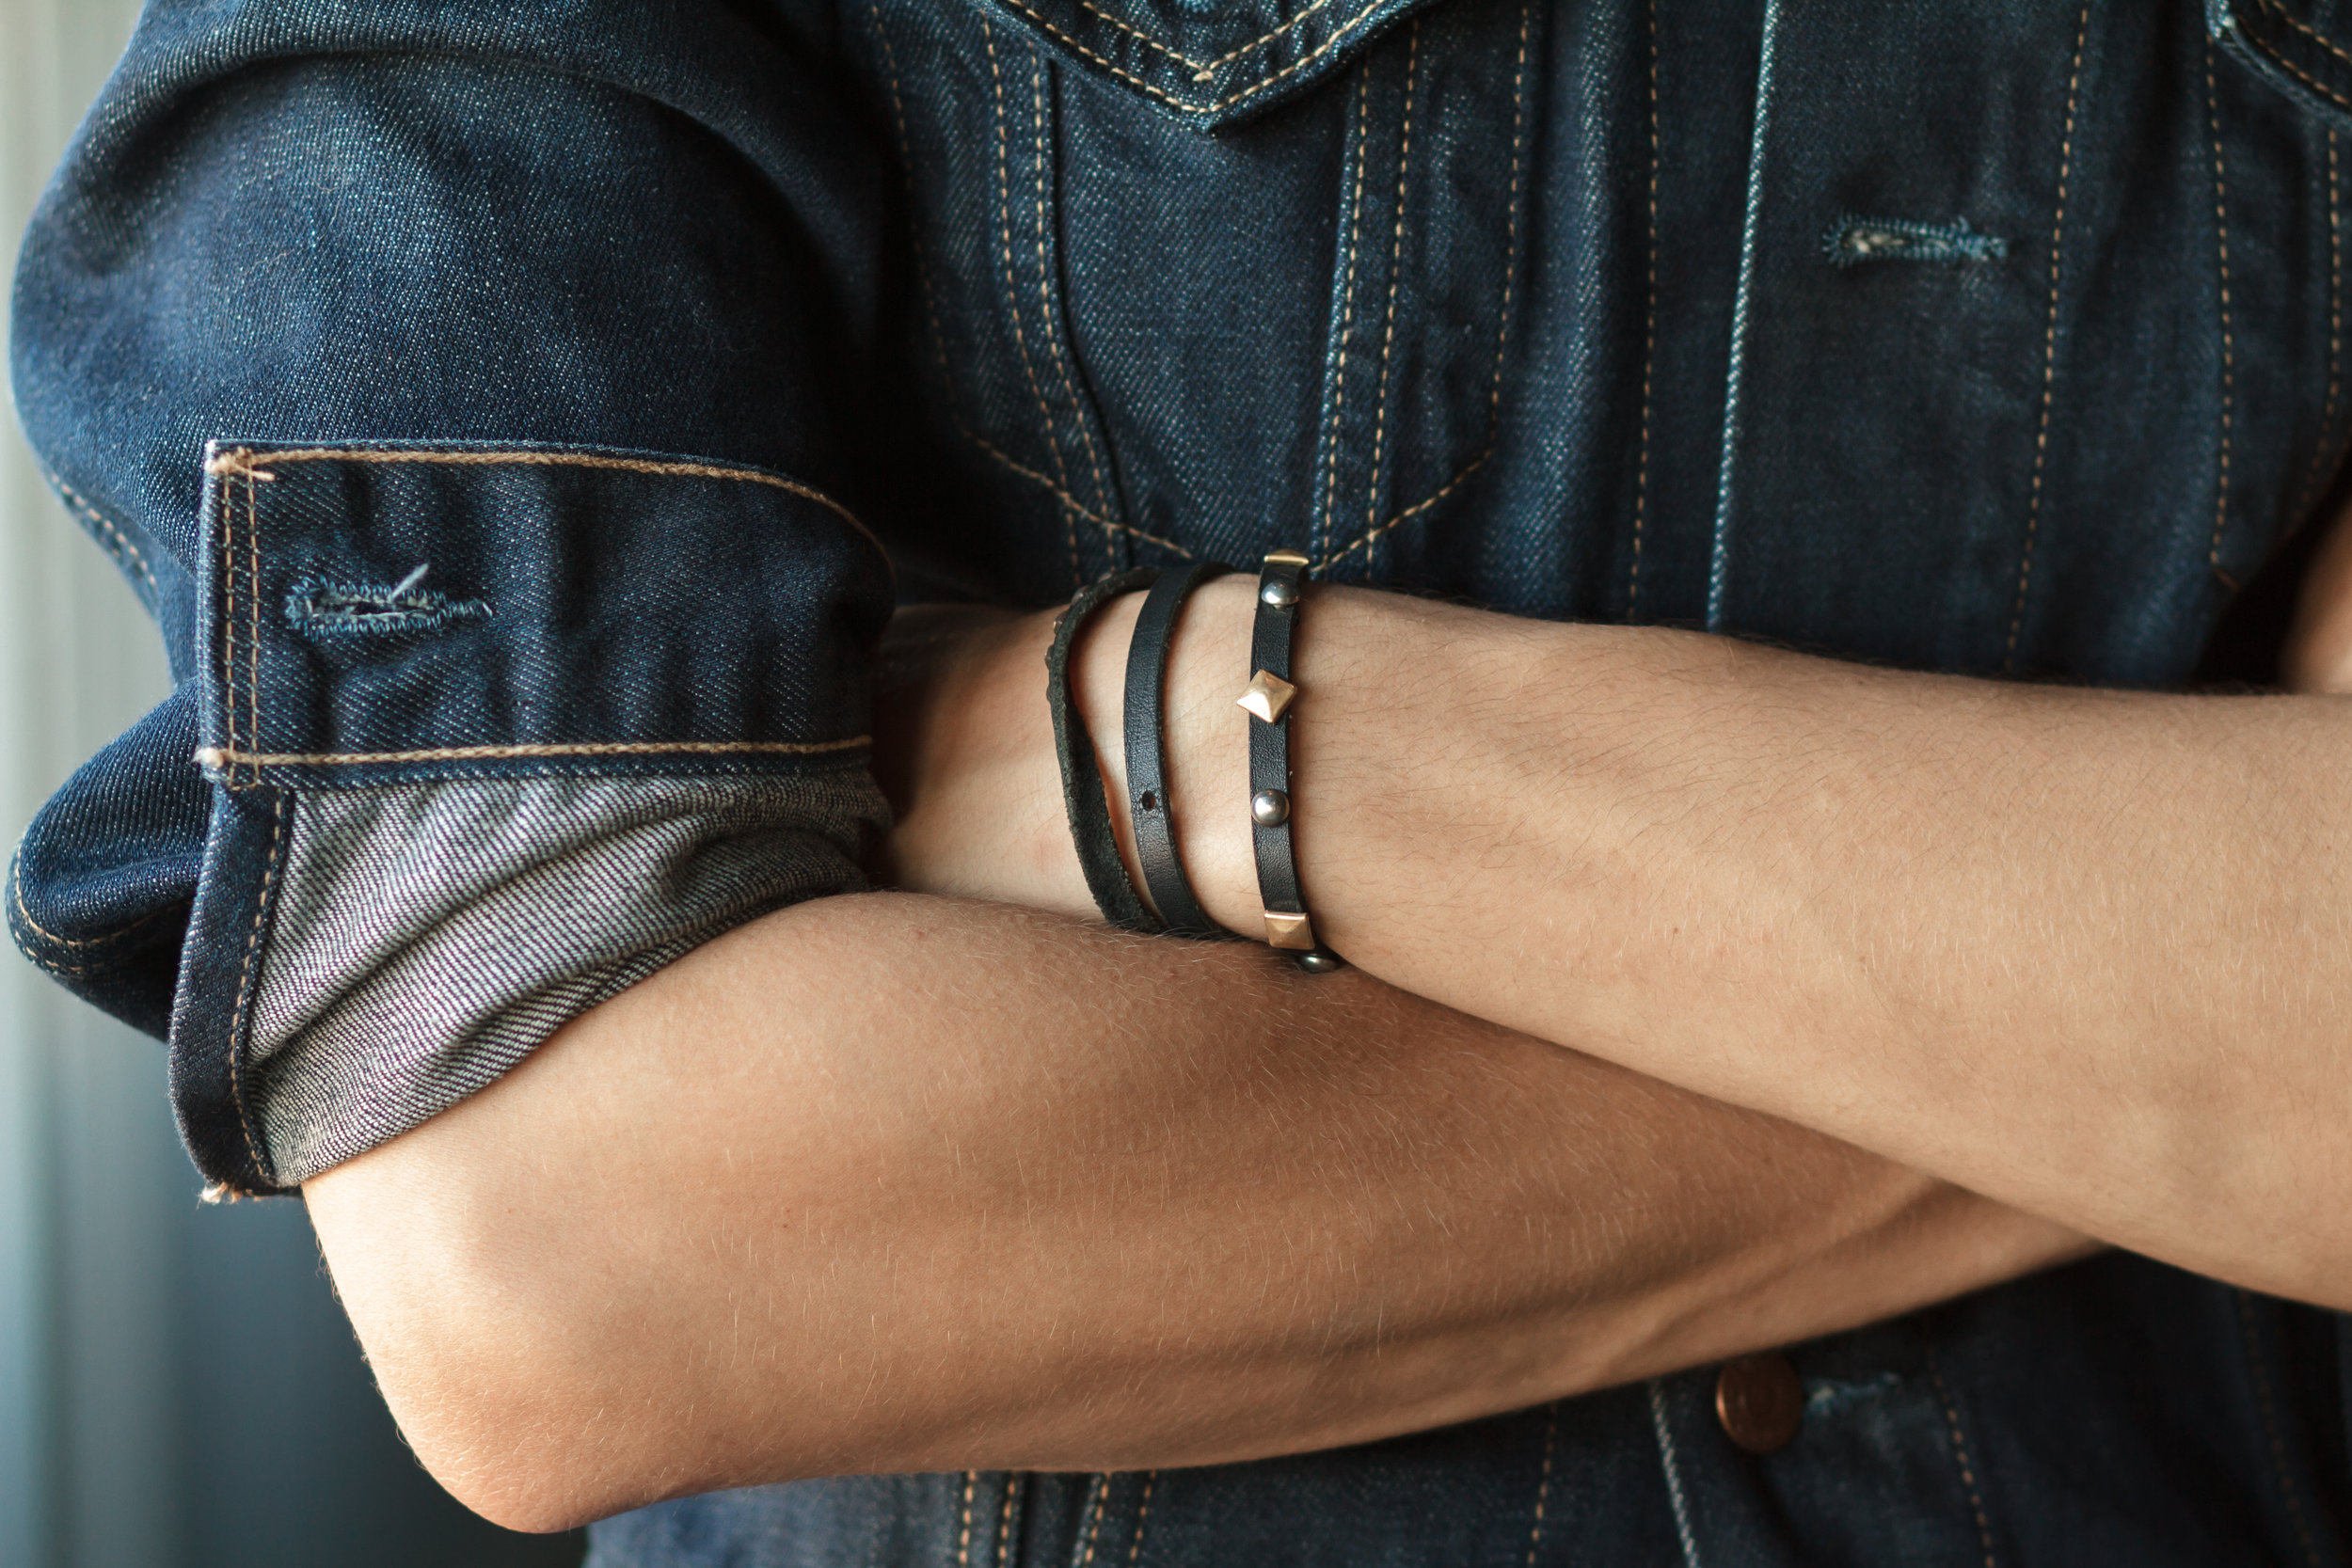 Bangles<a href=bangles>></a><strong></strong>